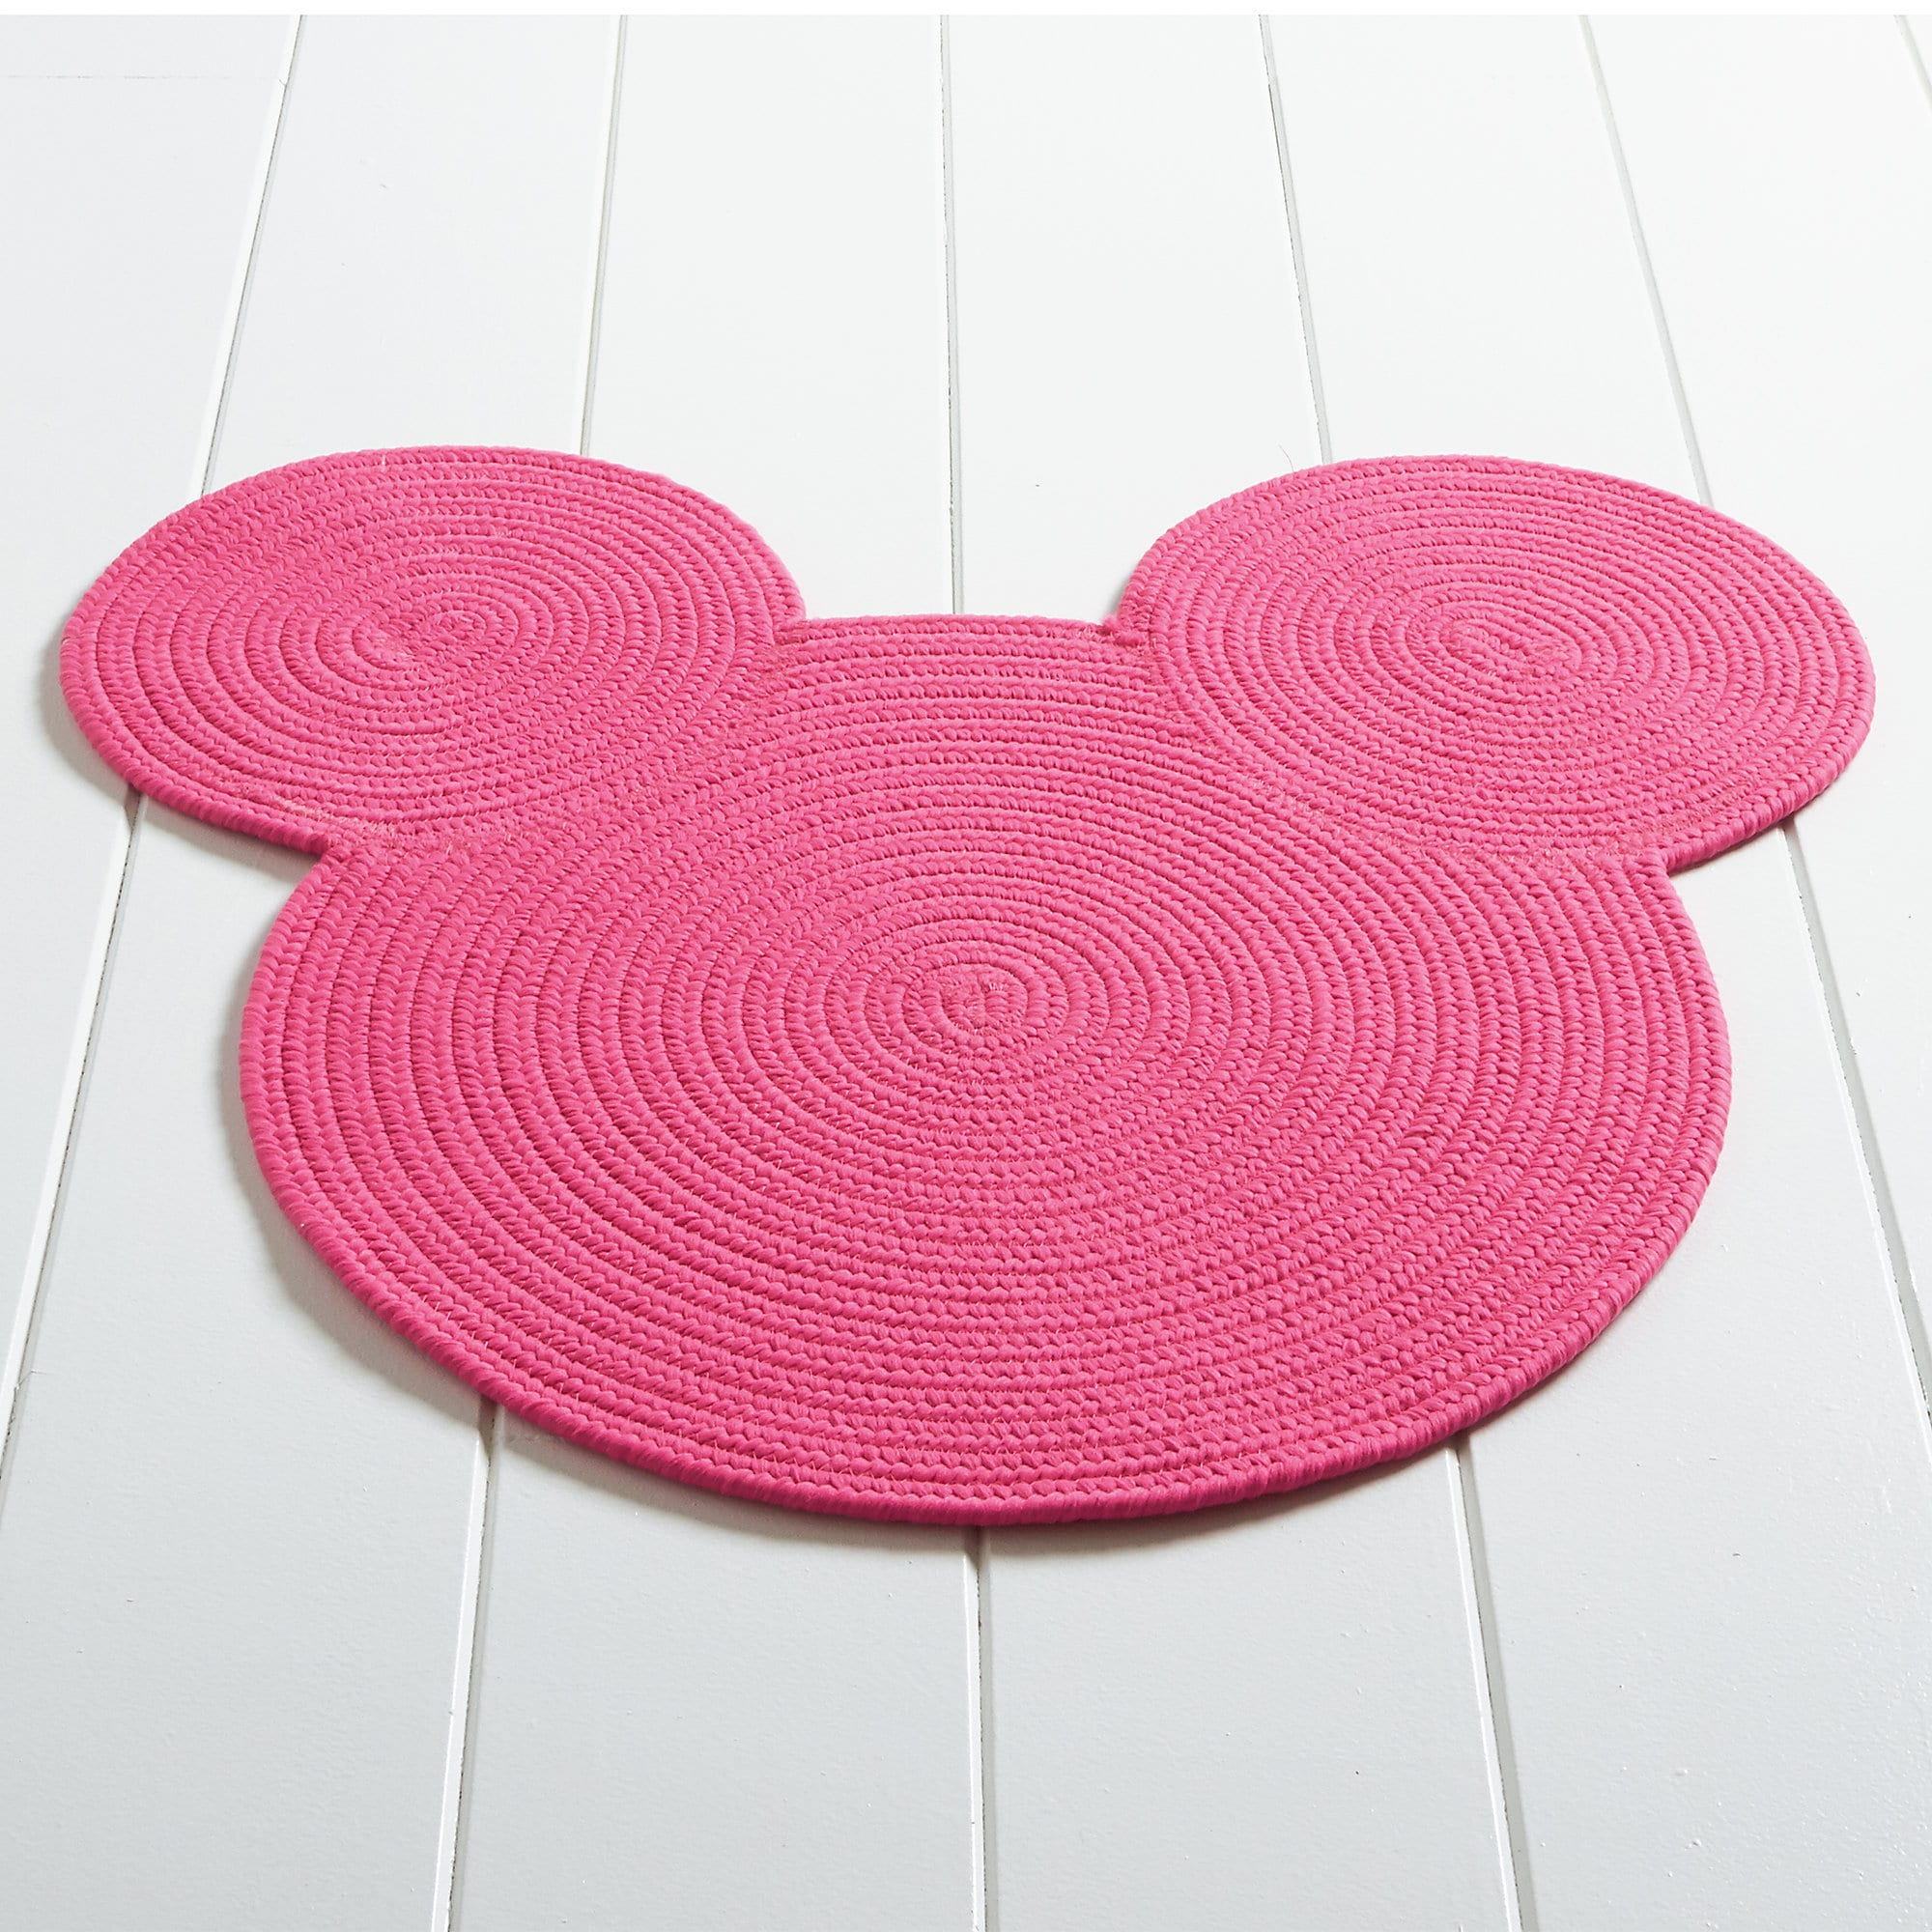 Superb Mickey Mouse Braided Rug By Ethan Allen